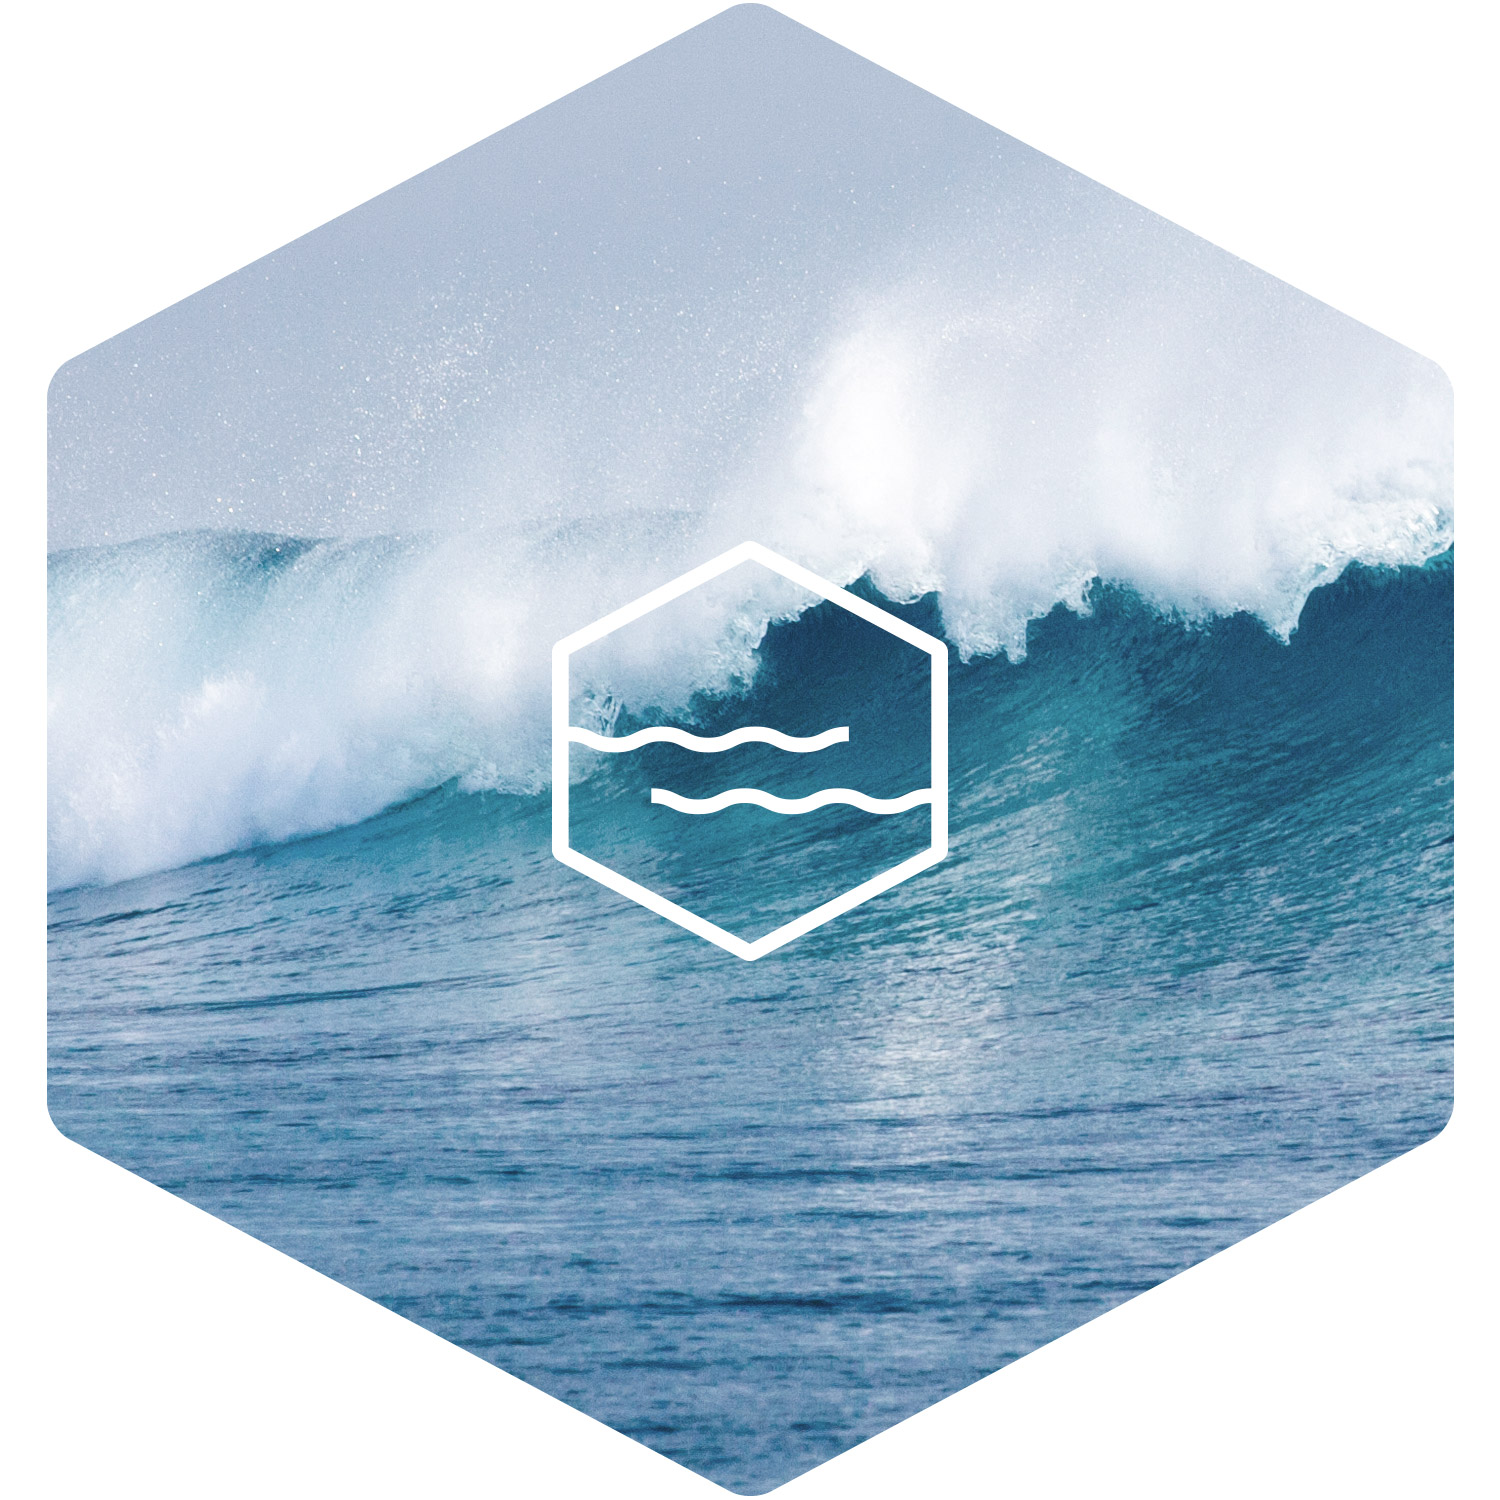 HexagonEnergy_WaveEnergy.jpg